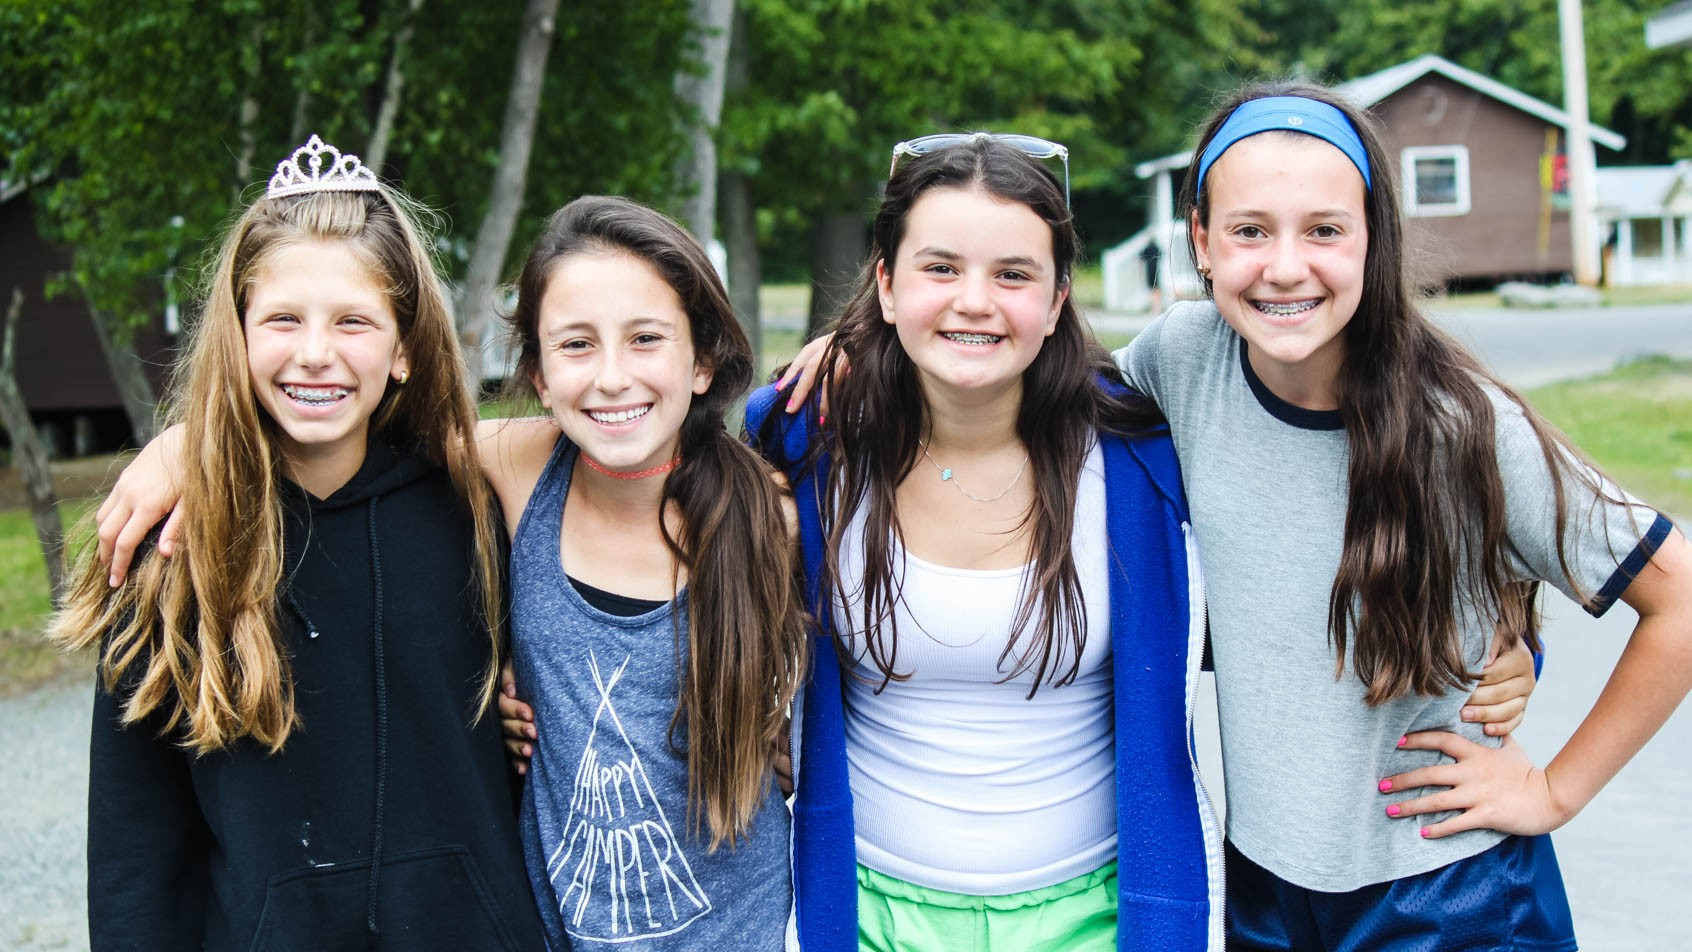 lake toxaway single jewish girls For gay and lesbian travelers traveling to north carolina,  north carolina gay guide: charlotte, raleigh,  single women, and the owners have.